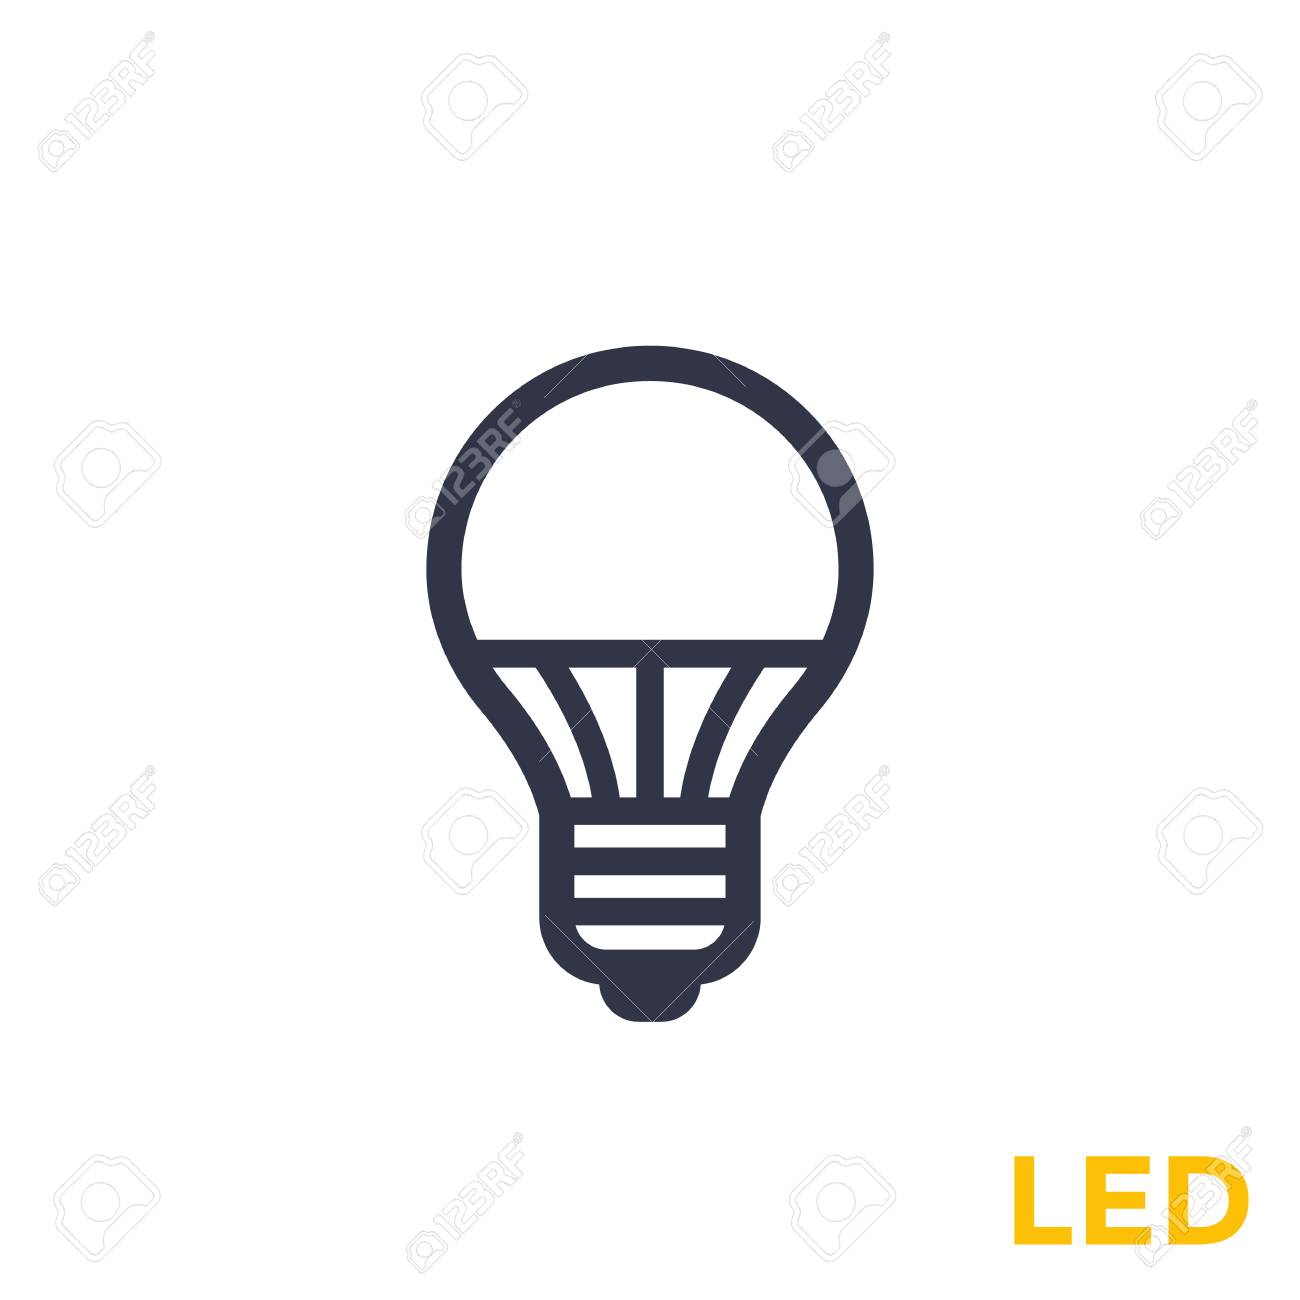 bulb on white led icon light EDIH29